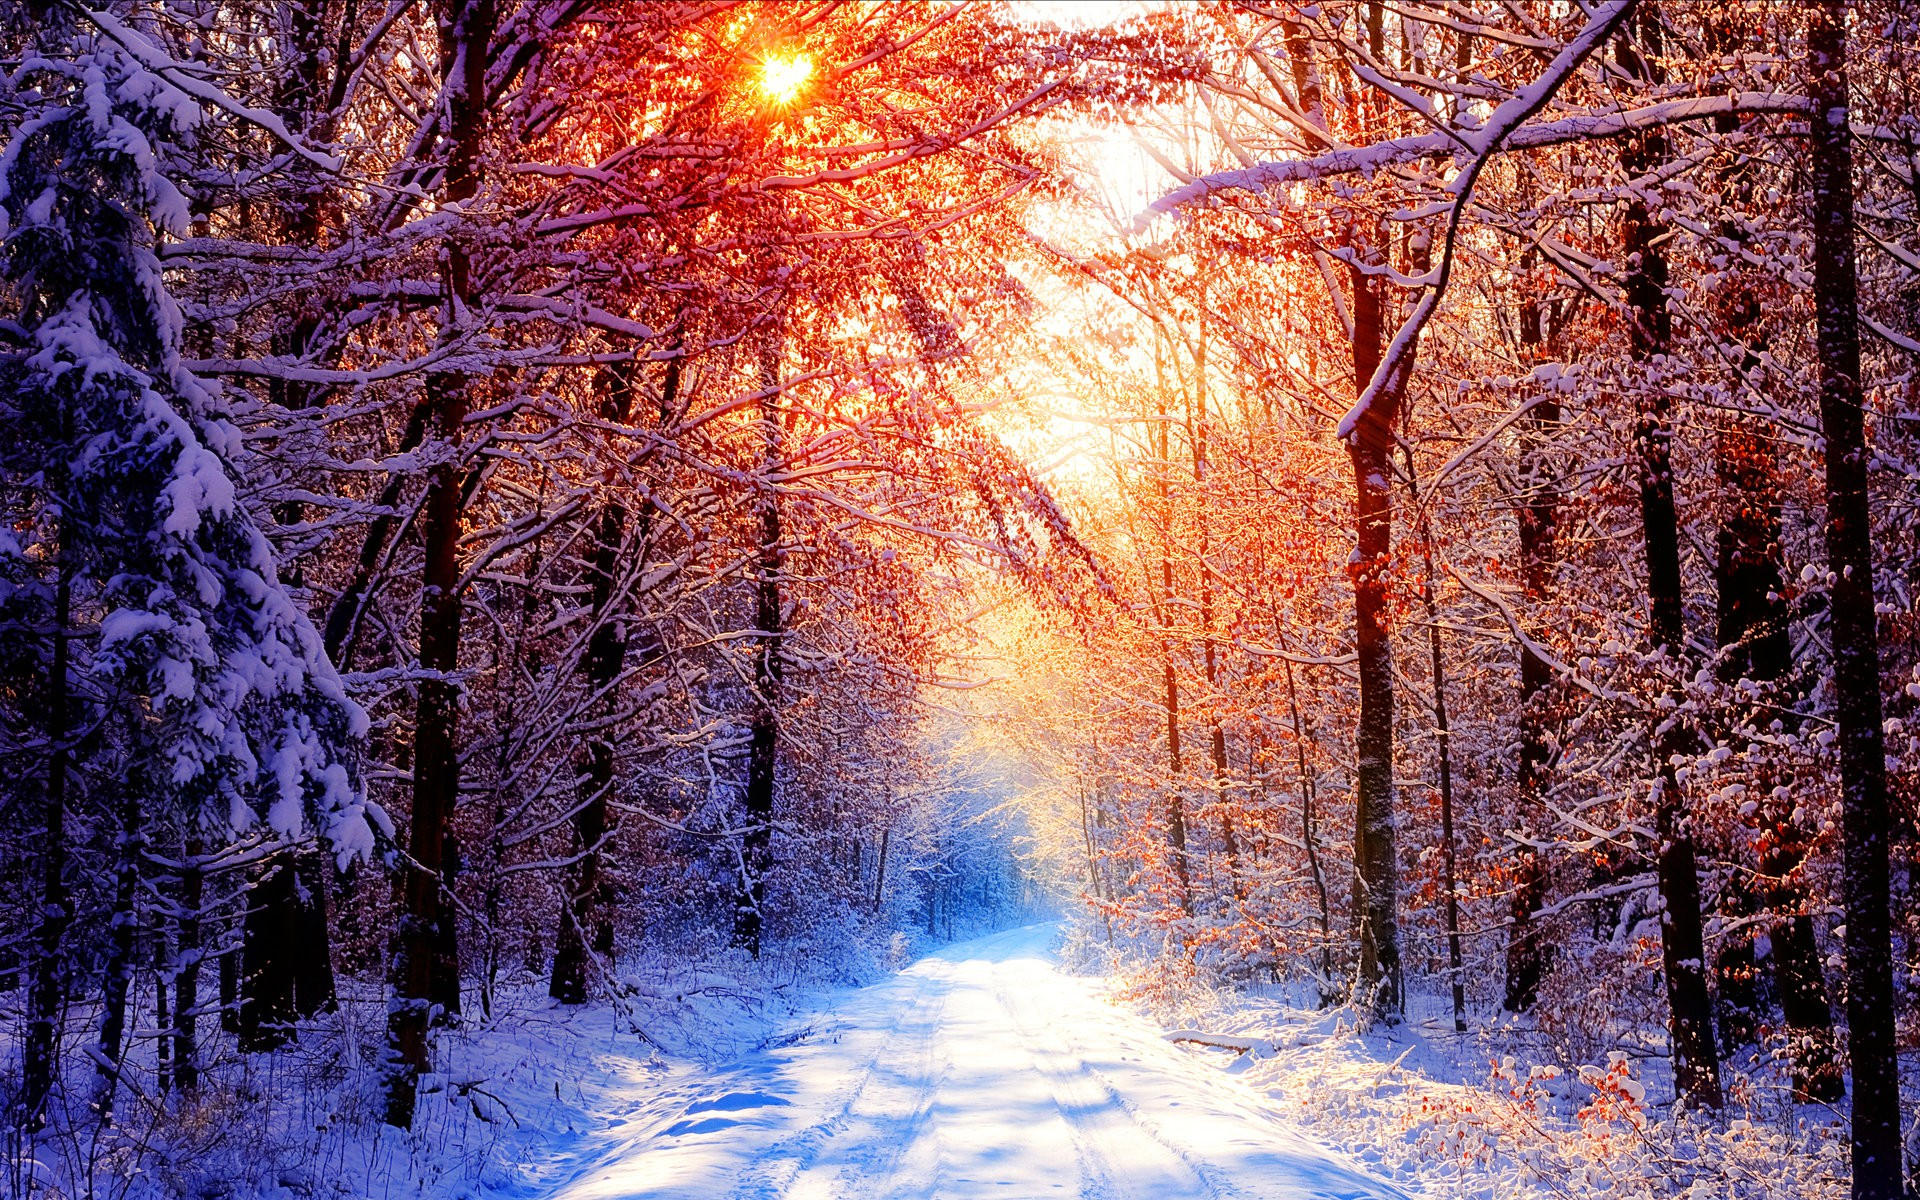 Sunset Winter Snowy Forest